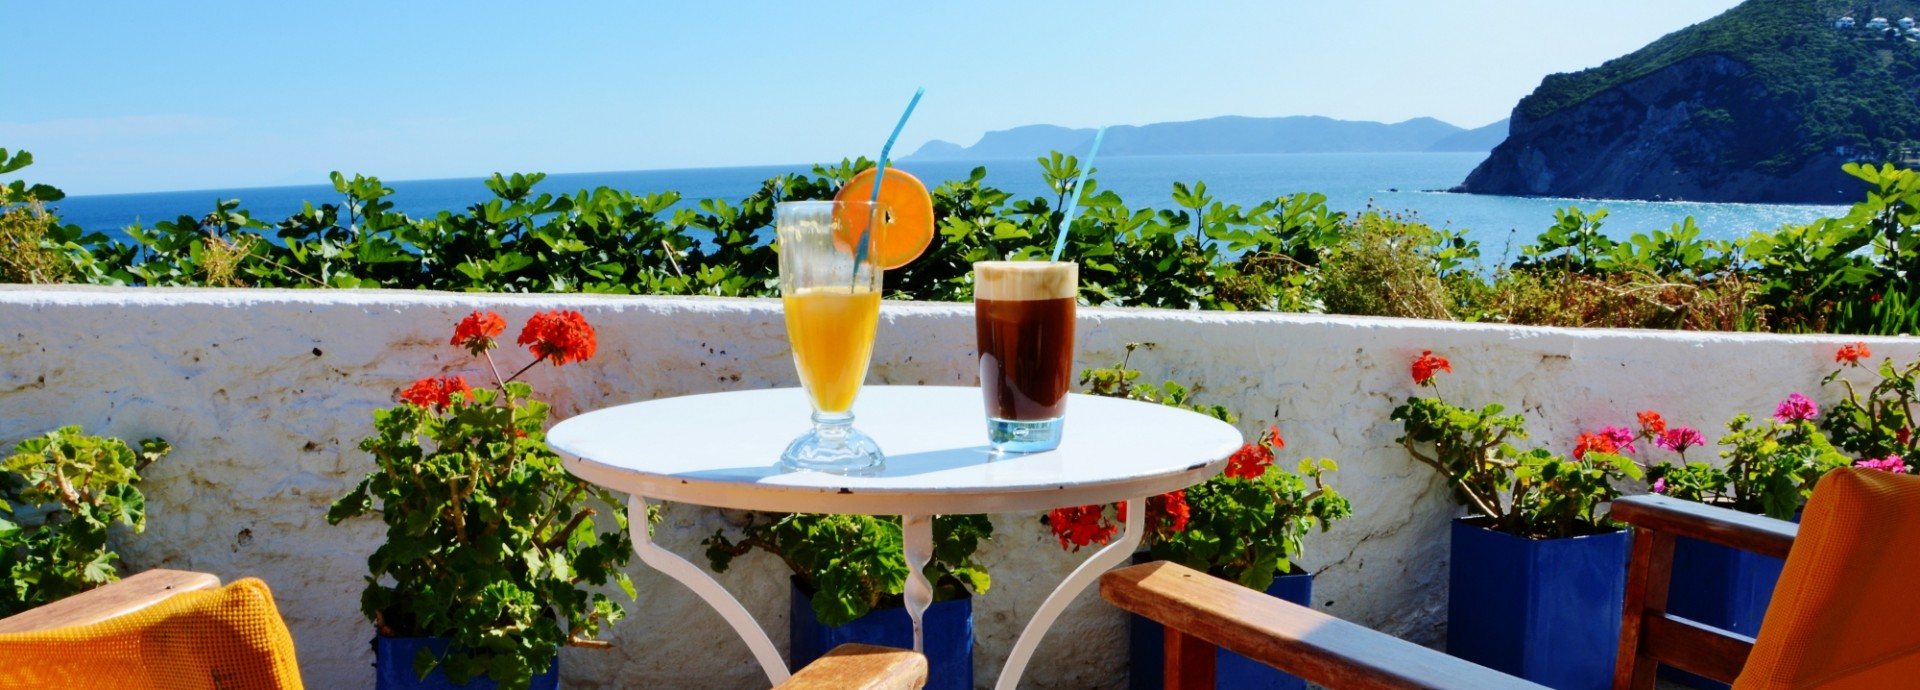 Morning coffee with a view on the cliffs in Skopelos Town